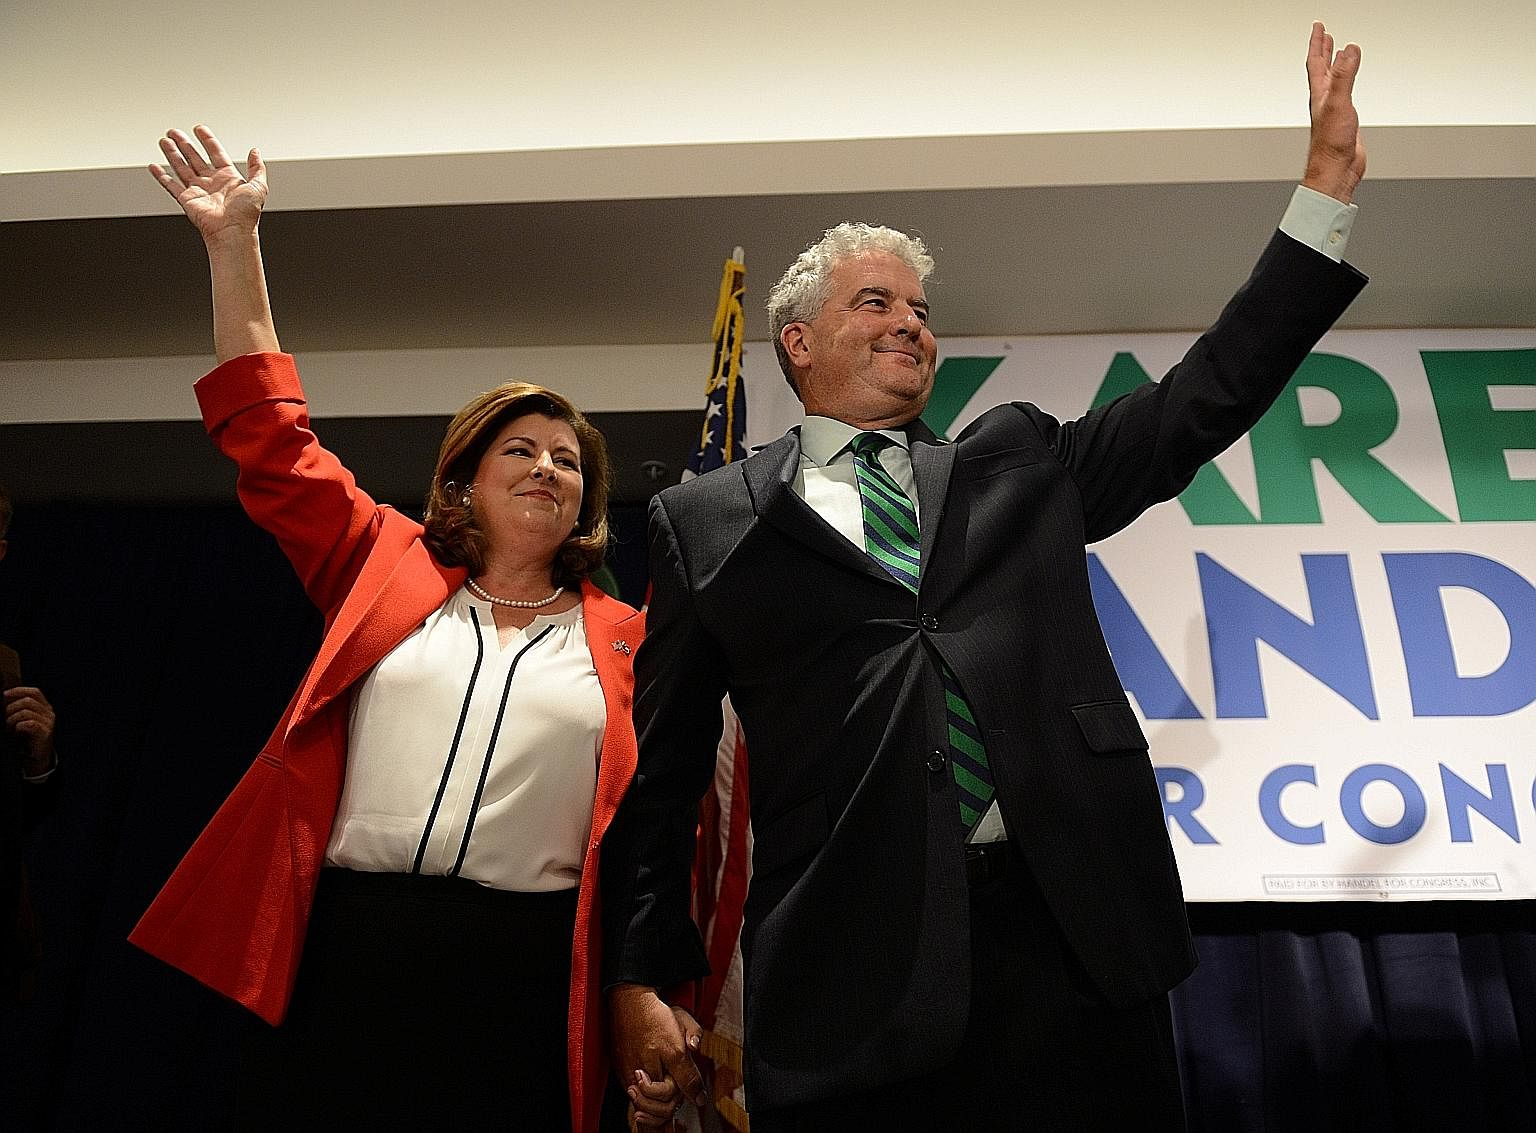 Ms Karen Handel with her husband Steve after her election victory on Tuesday. The Republican won a key contest in Georgia.